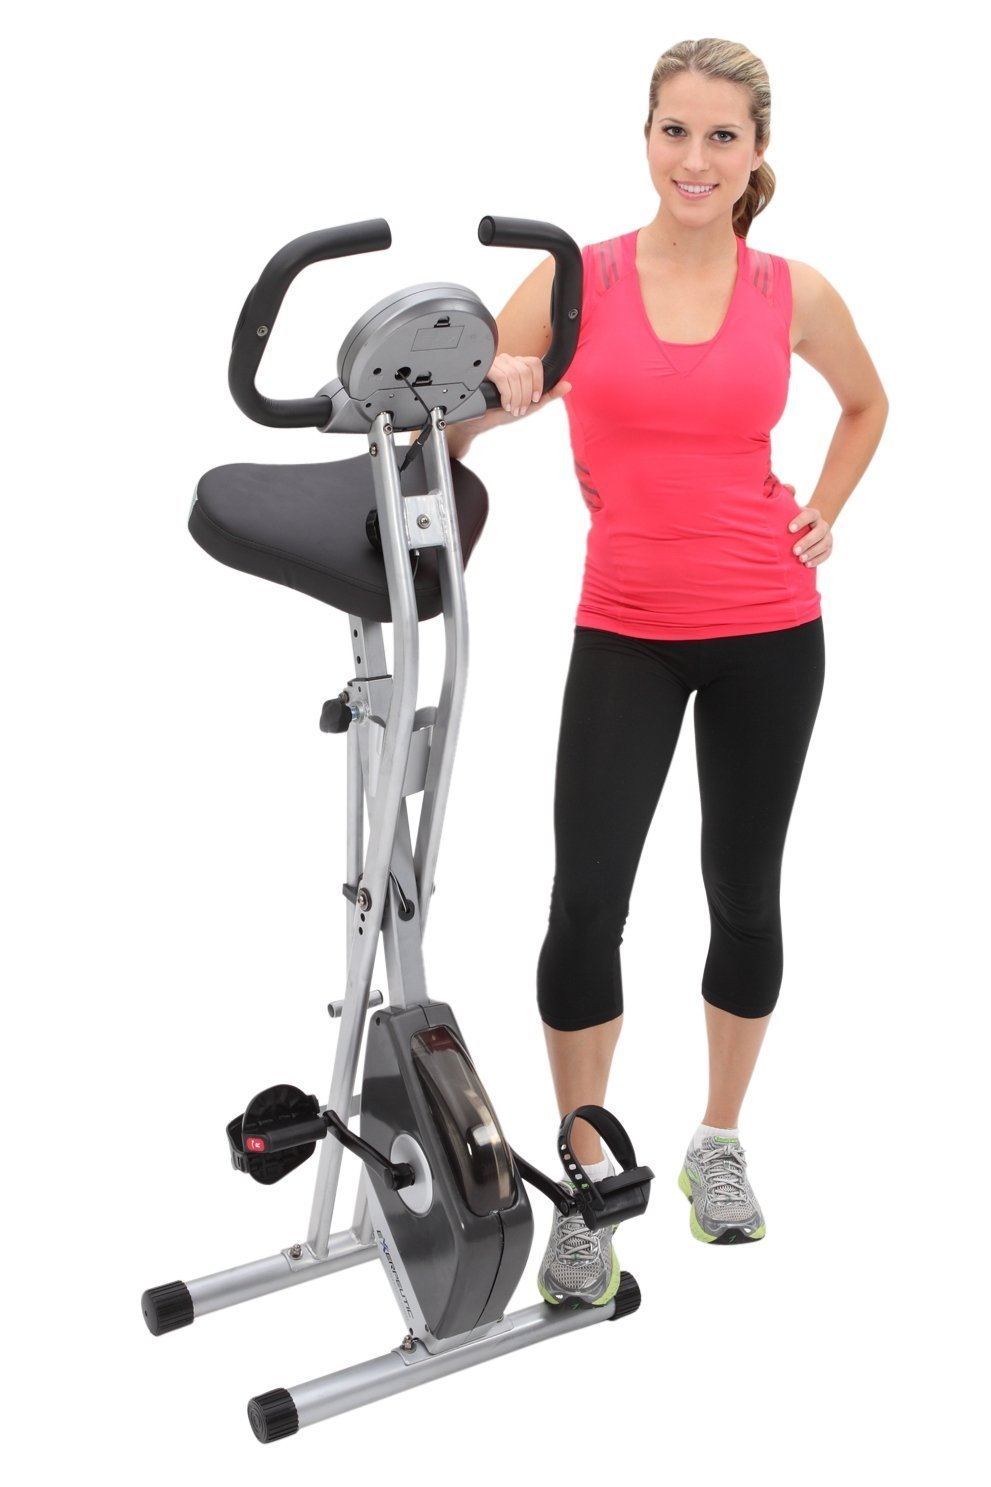 Exerpeutic Folding Magnetic Upright Bike with Pulse is pictured here